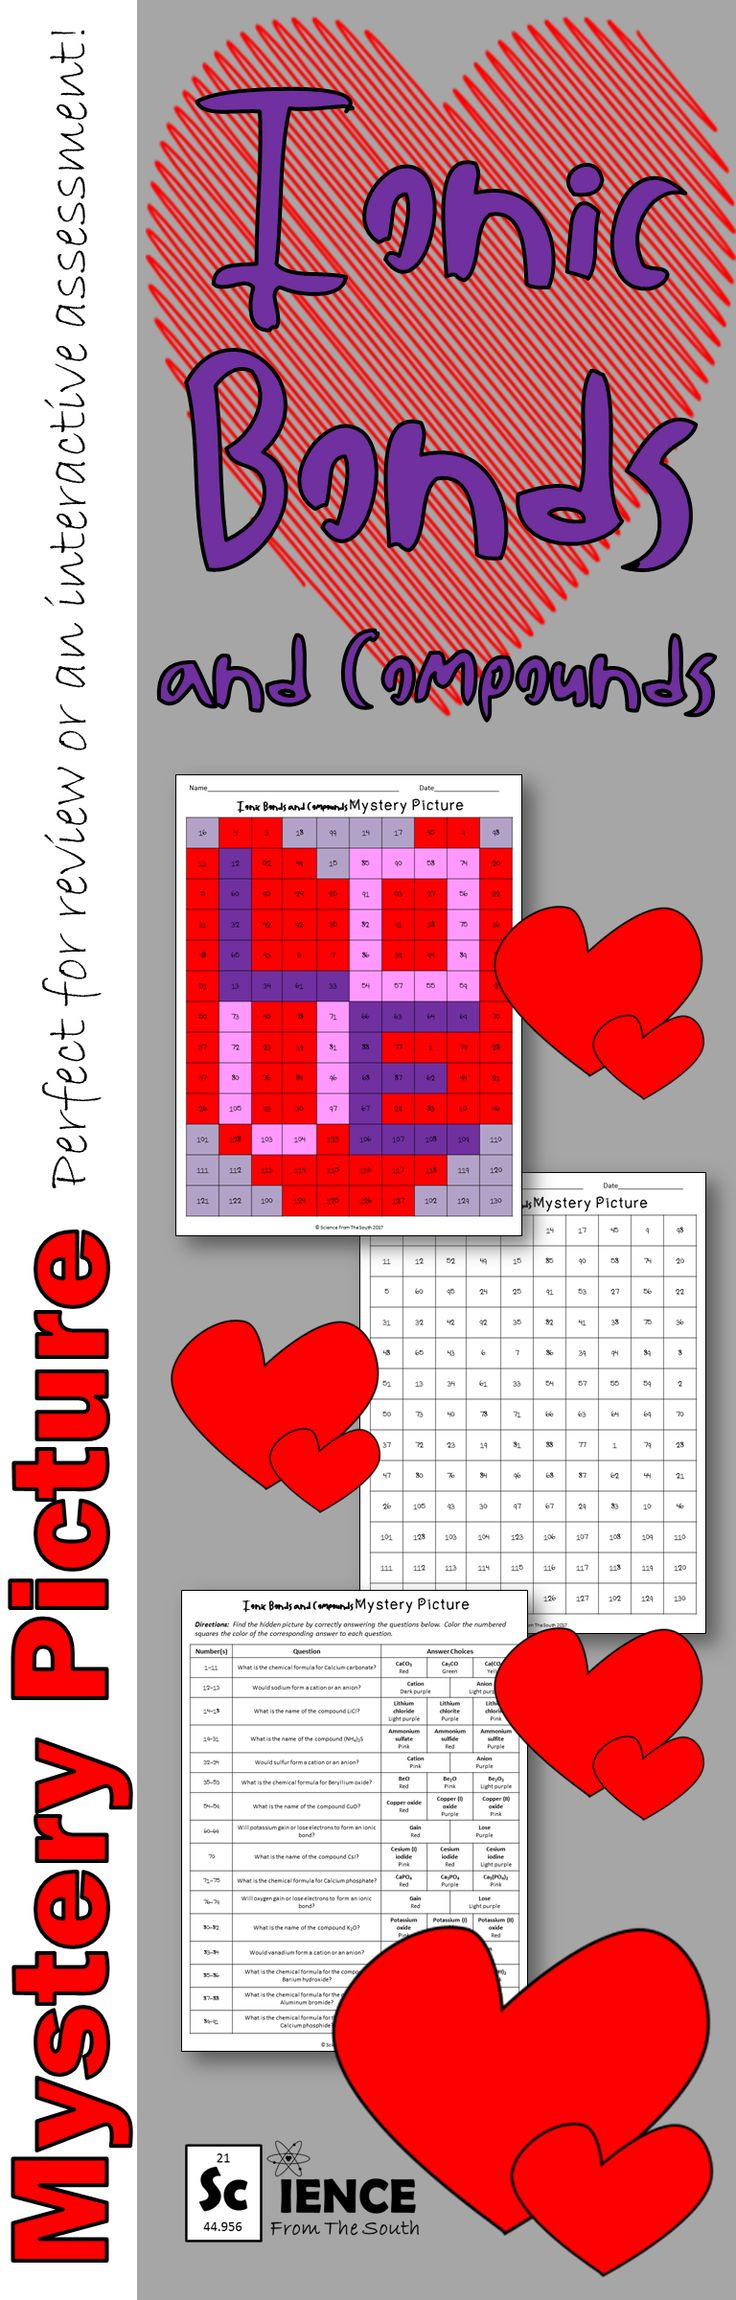 Ionic bonds and compounds chemical formulas and names engaging Valentine's Day activity!